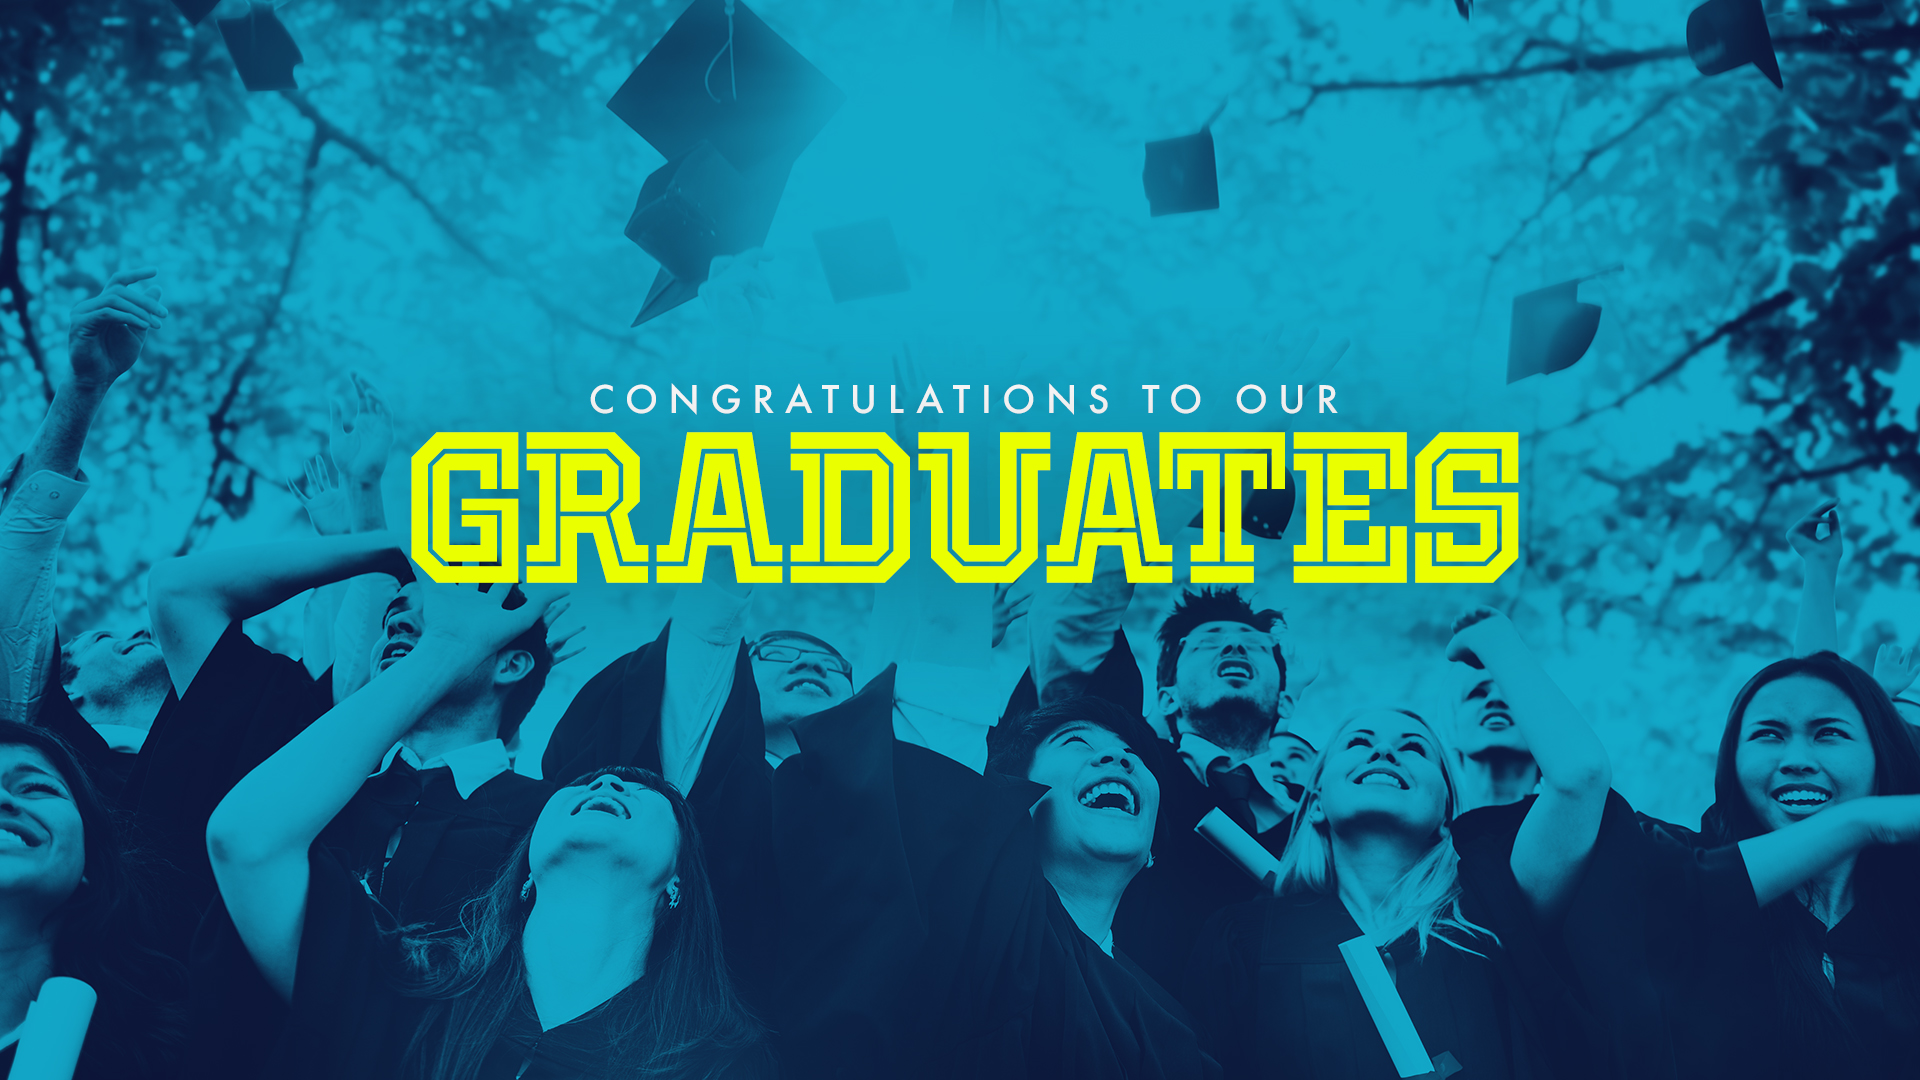 Congratulations to our graduates title 1 wide 16x9